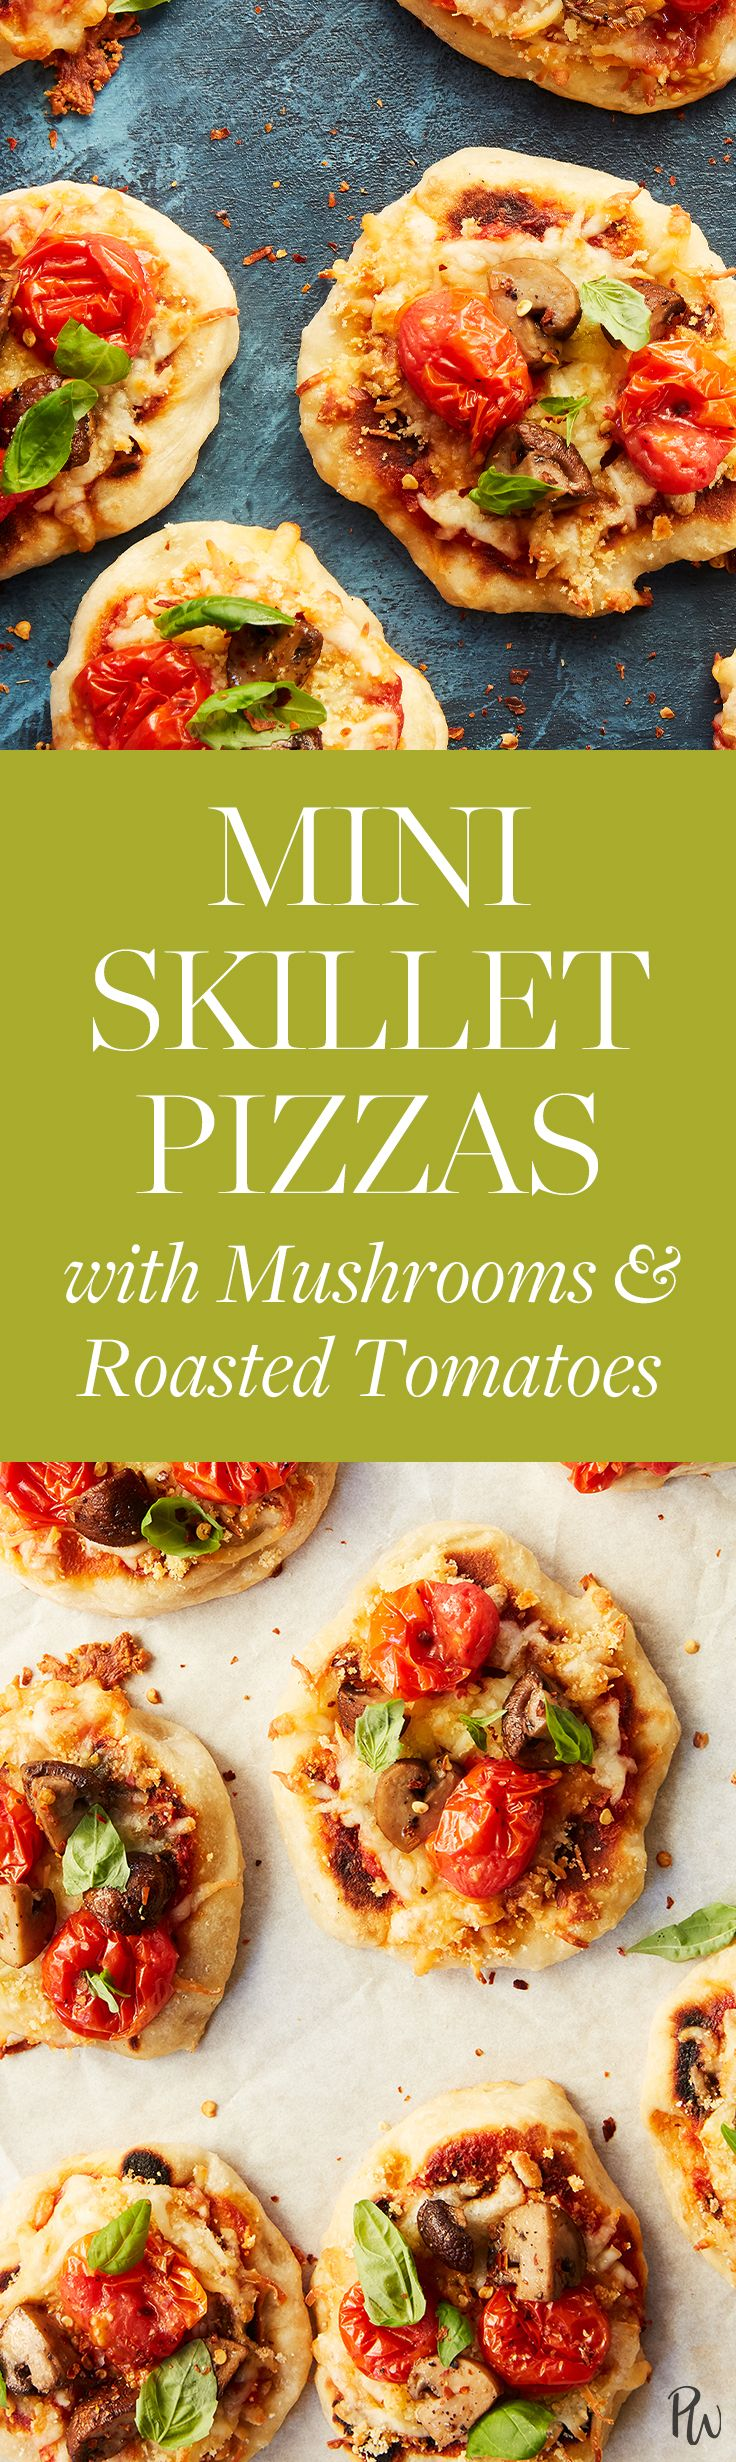 Mini Skillet Pizzas with Mushrooms and Roasted Tomatoes Mini Skillet Pizzas with Mushrooms and Roasted Tomatoes